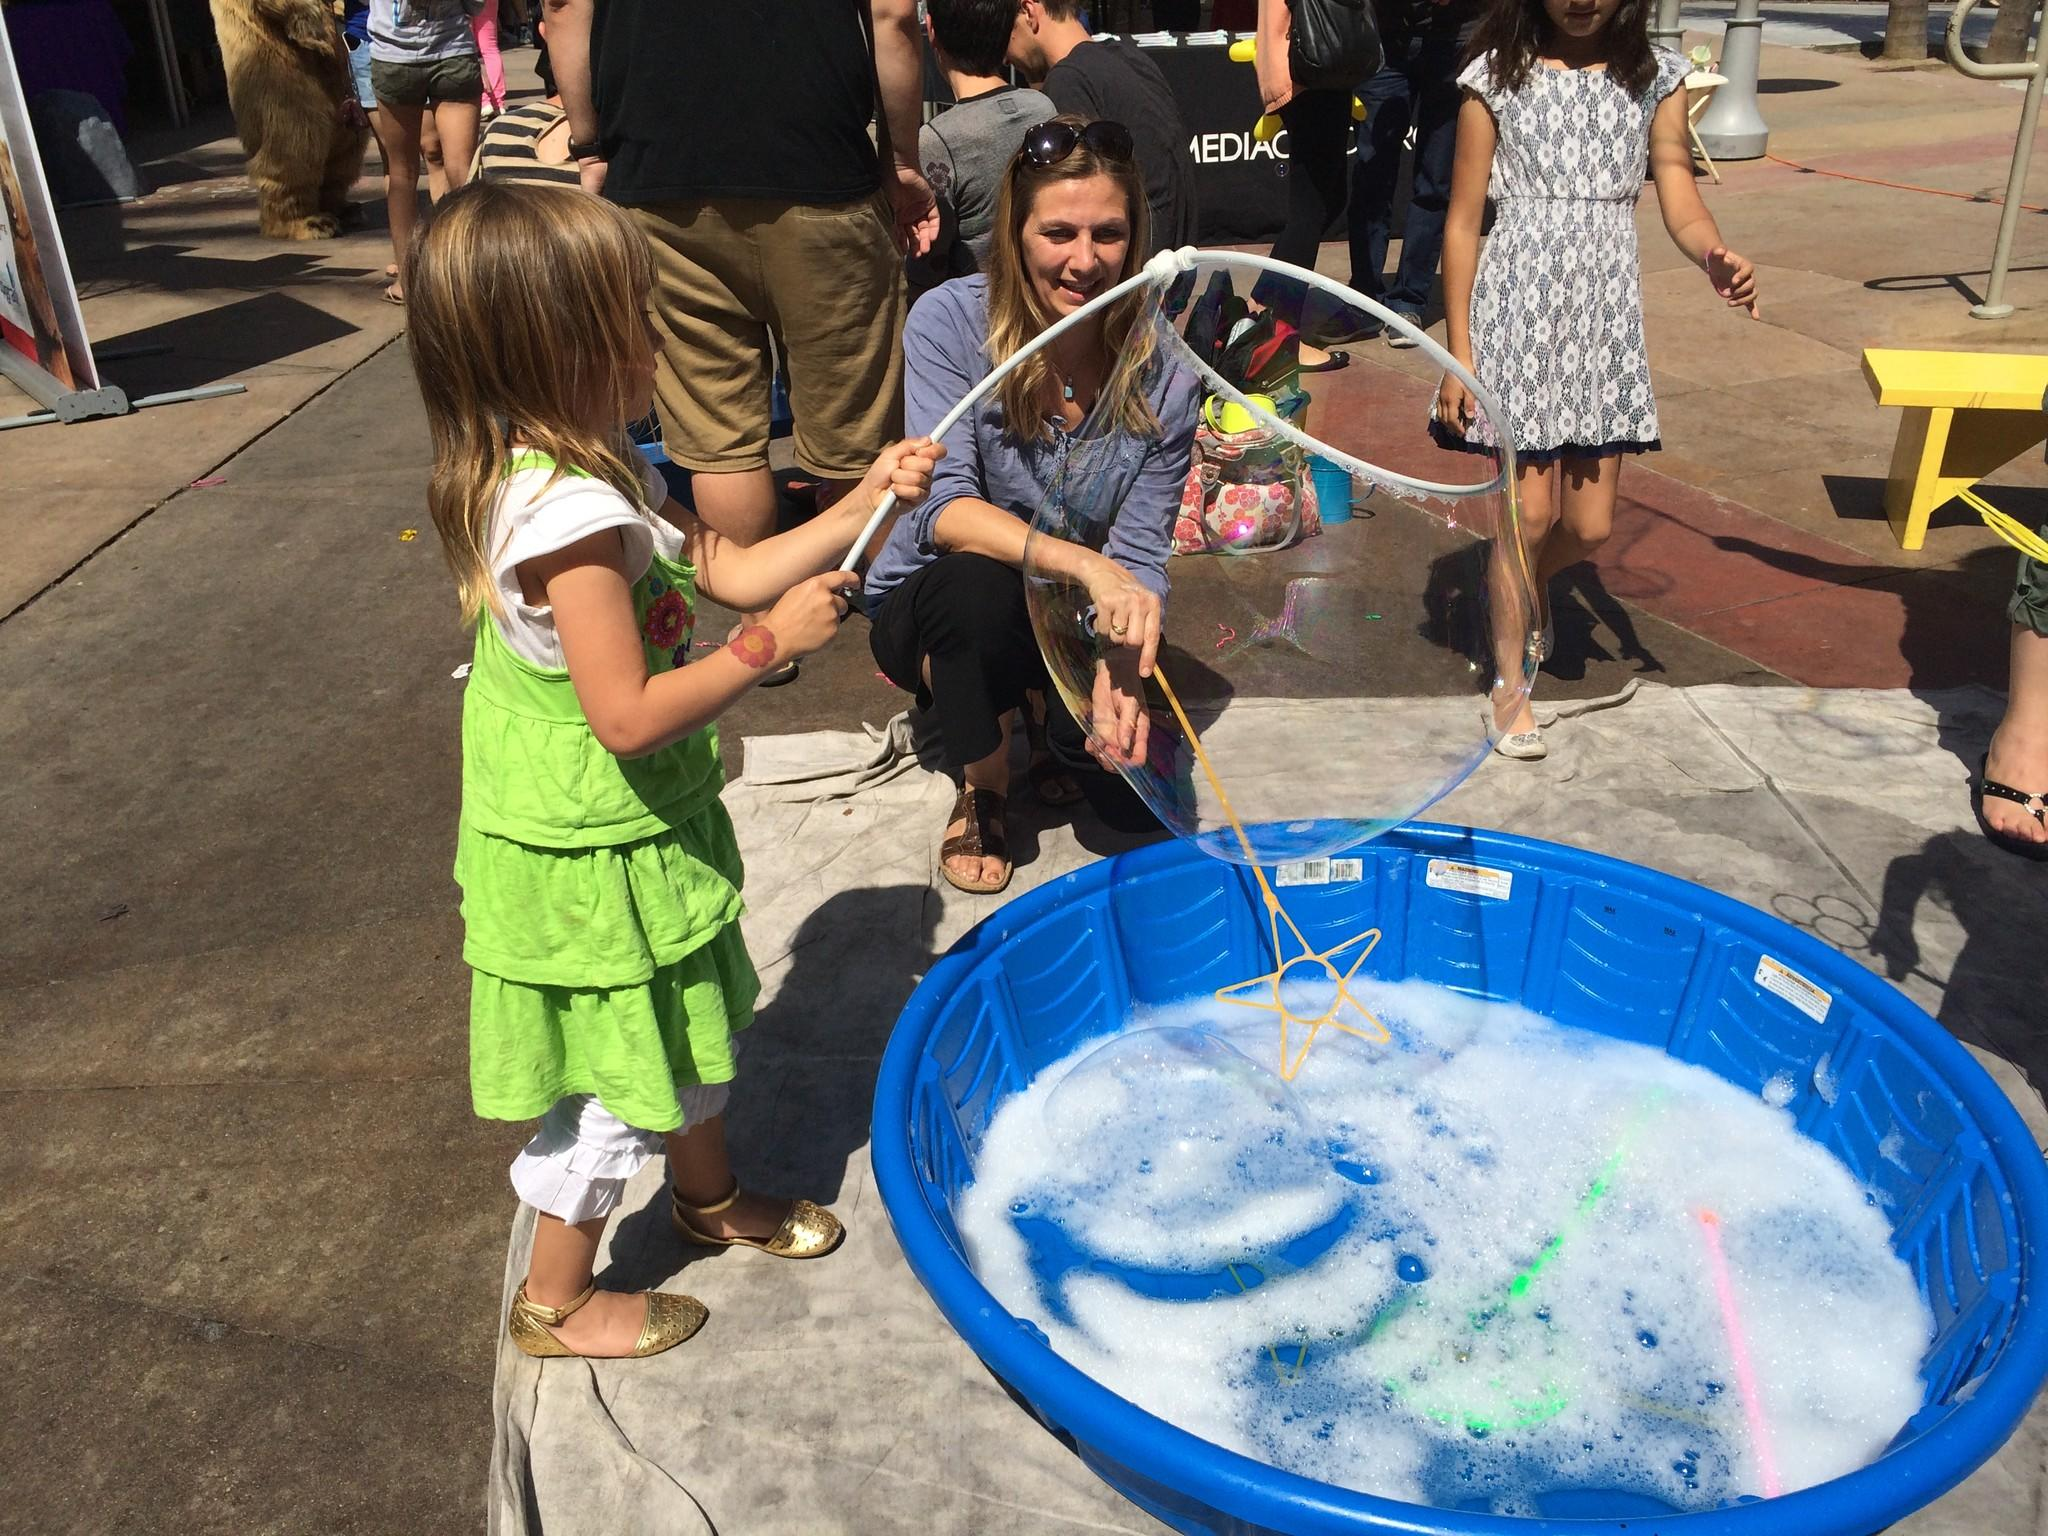 Sienna Euliss, 5, makes a giant bubble at the Downtown Burbank Arts Festival as her mother, Ulrika, watches.